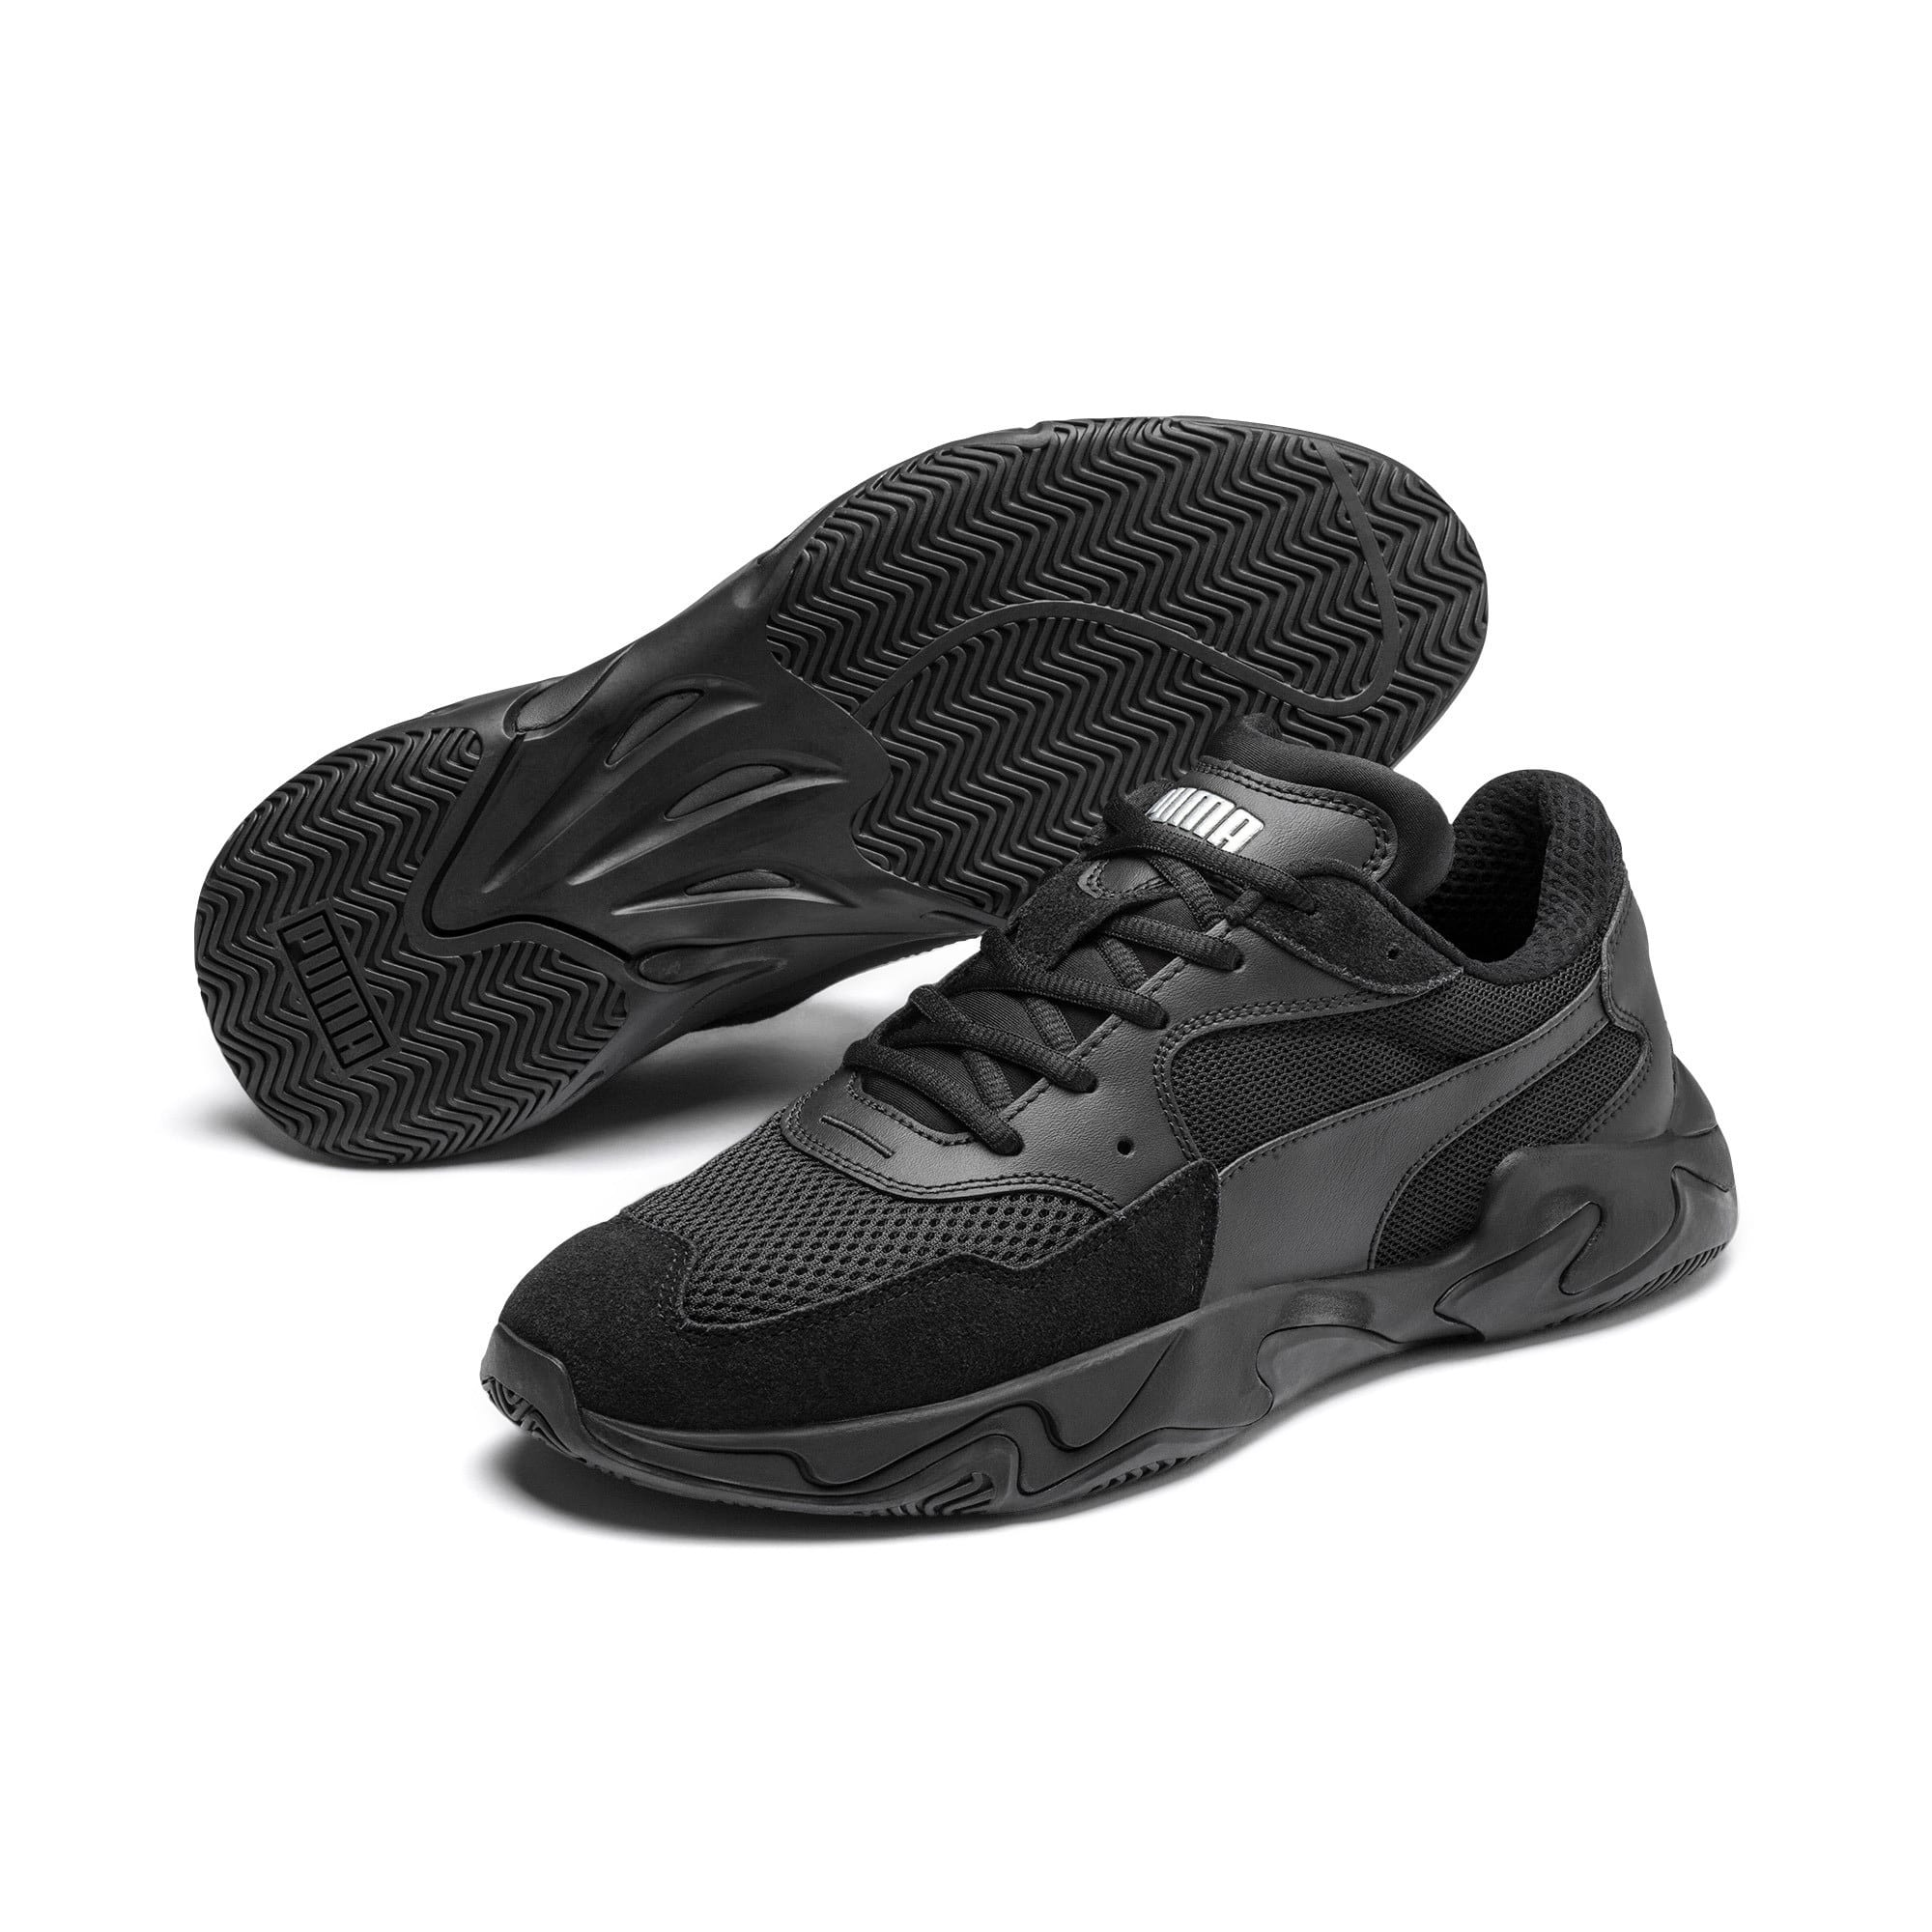 Zapatillas Storm Origin, Puma Black, grande